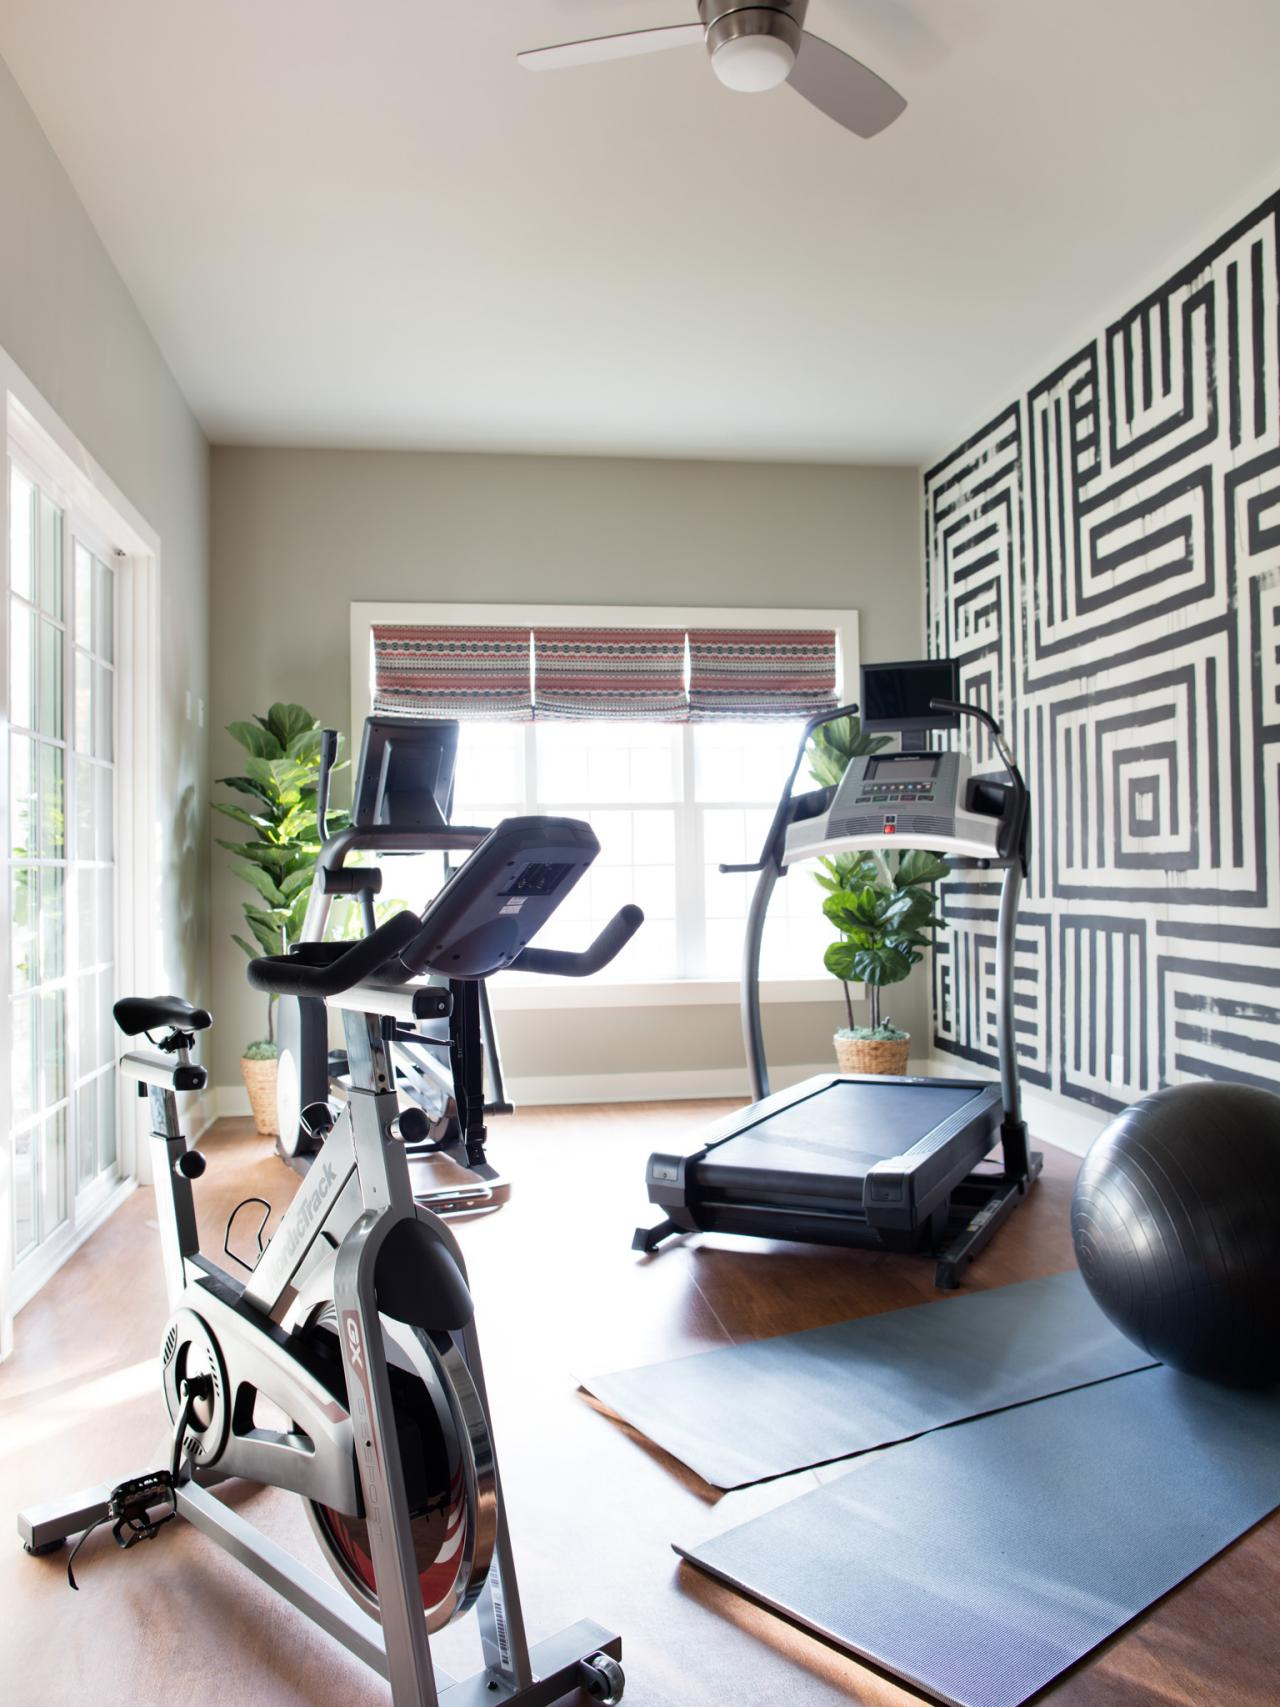 5 Must-Haves For A DIY Home Gym